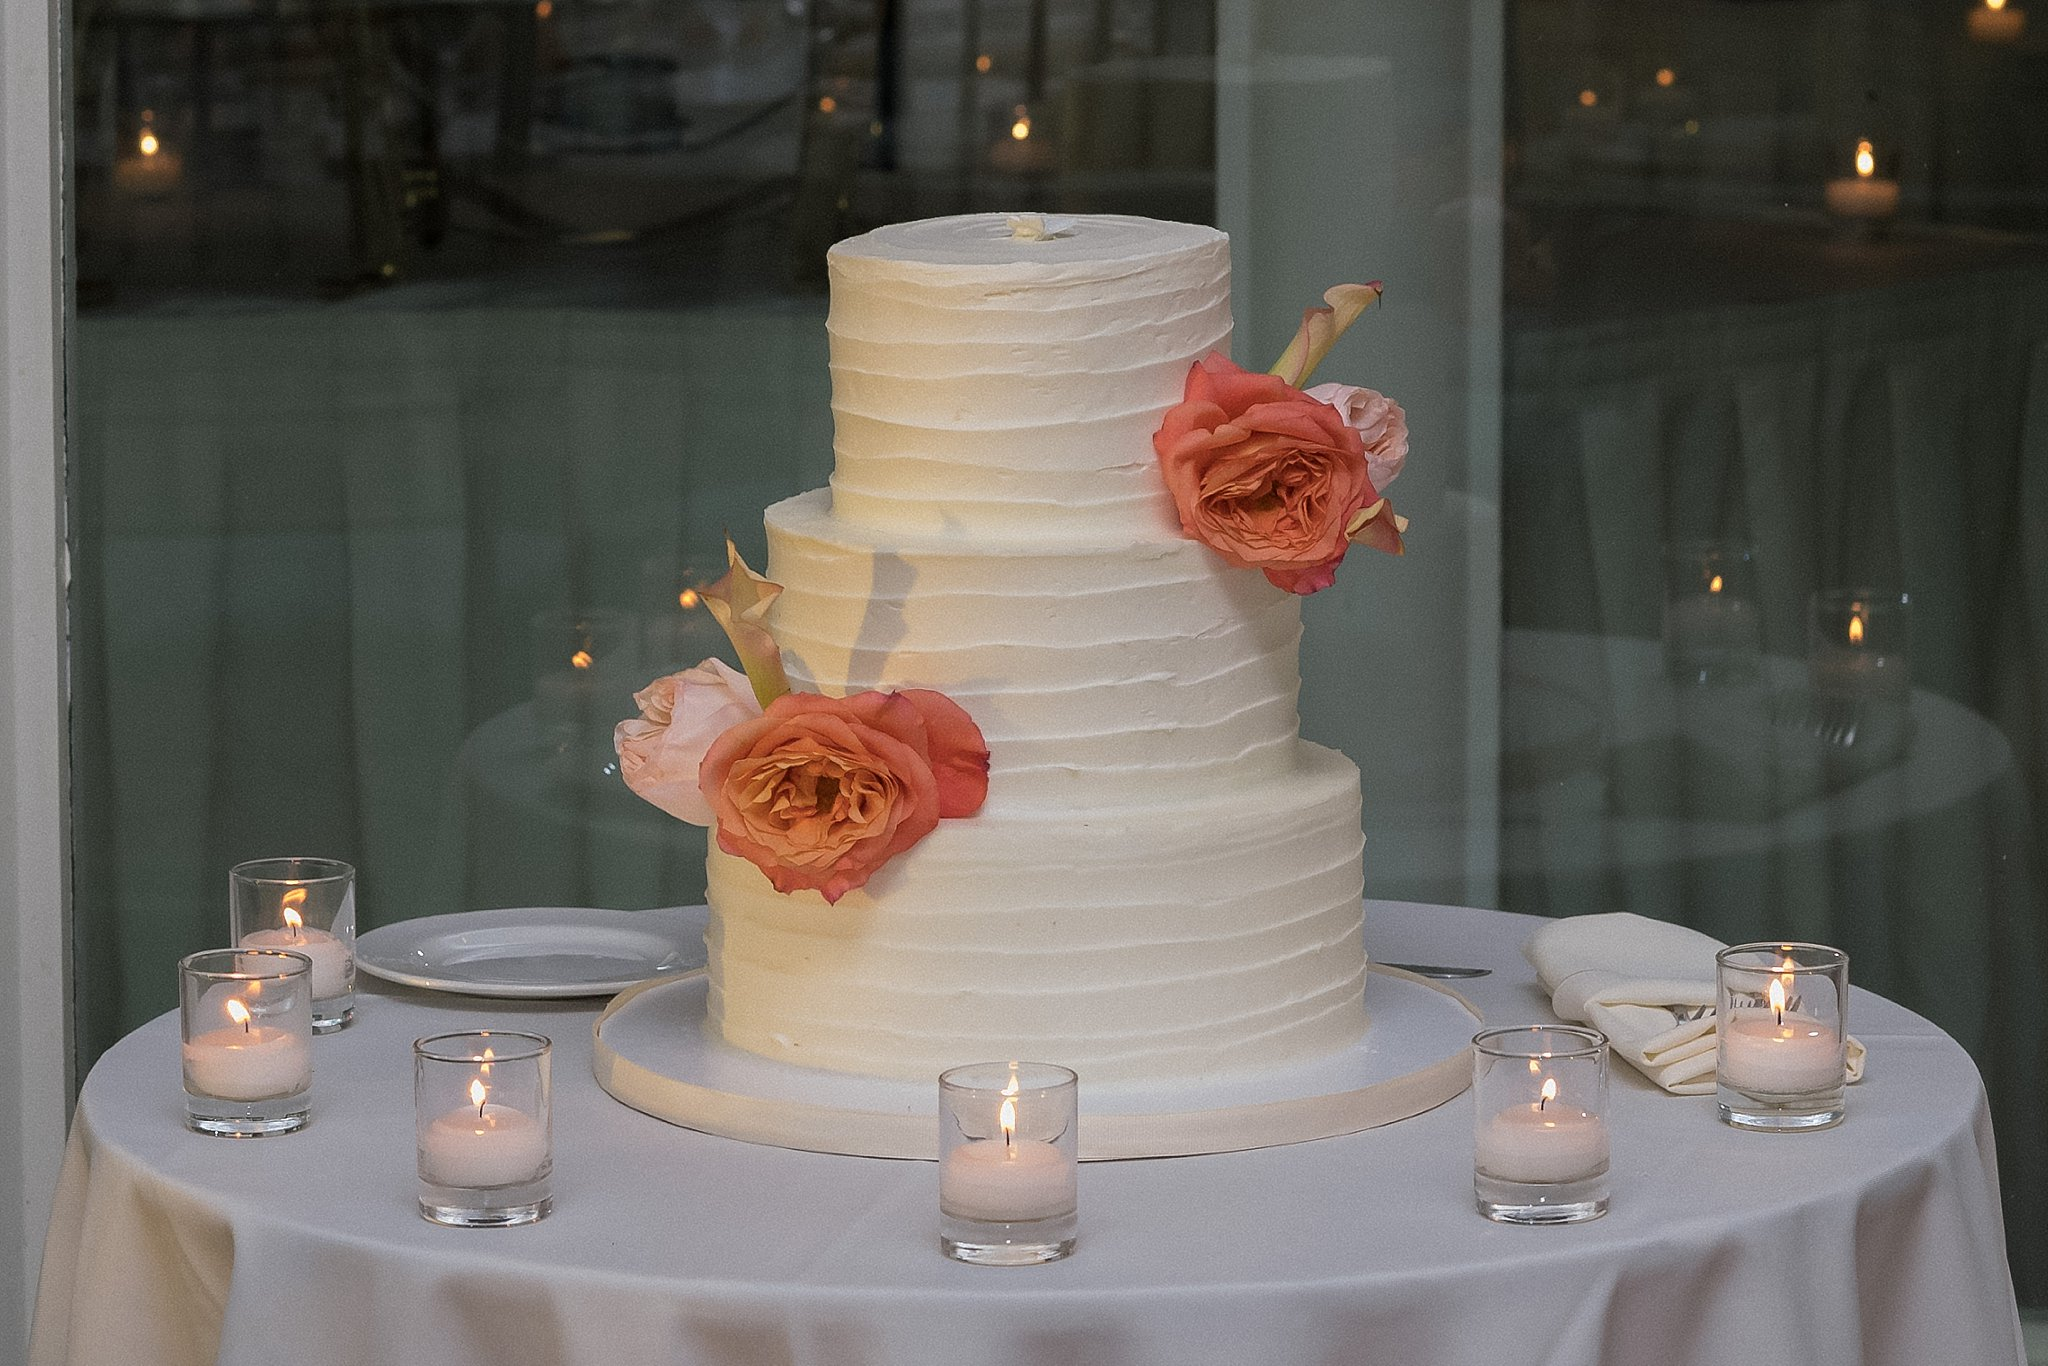 Wedding Cake photographed by Susan Shek Wedding Photography in New York City, NY.